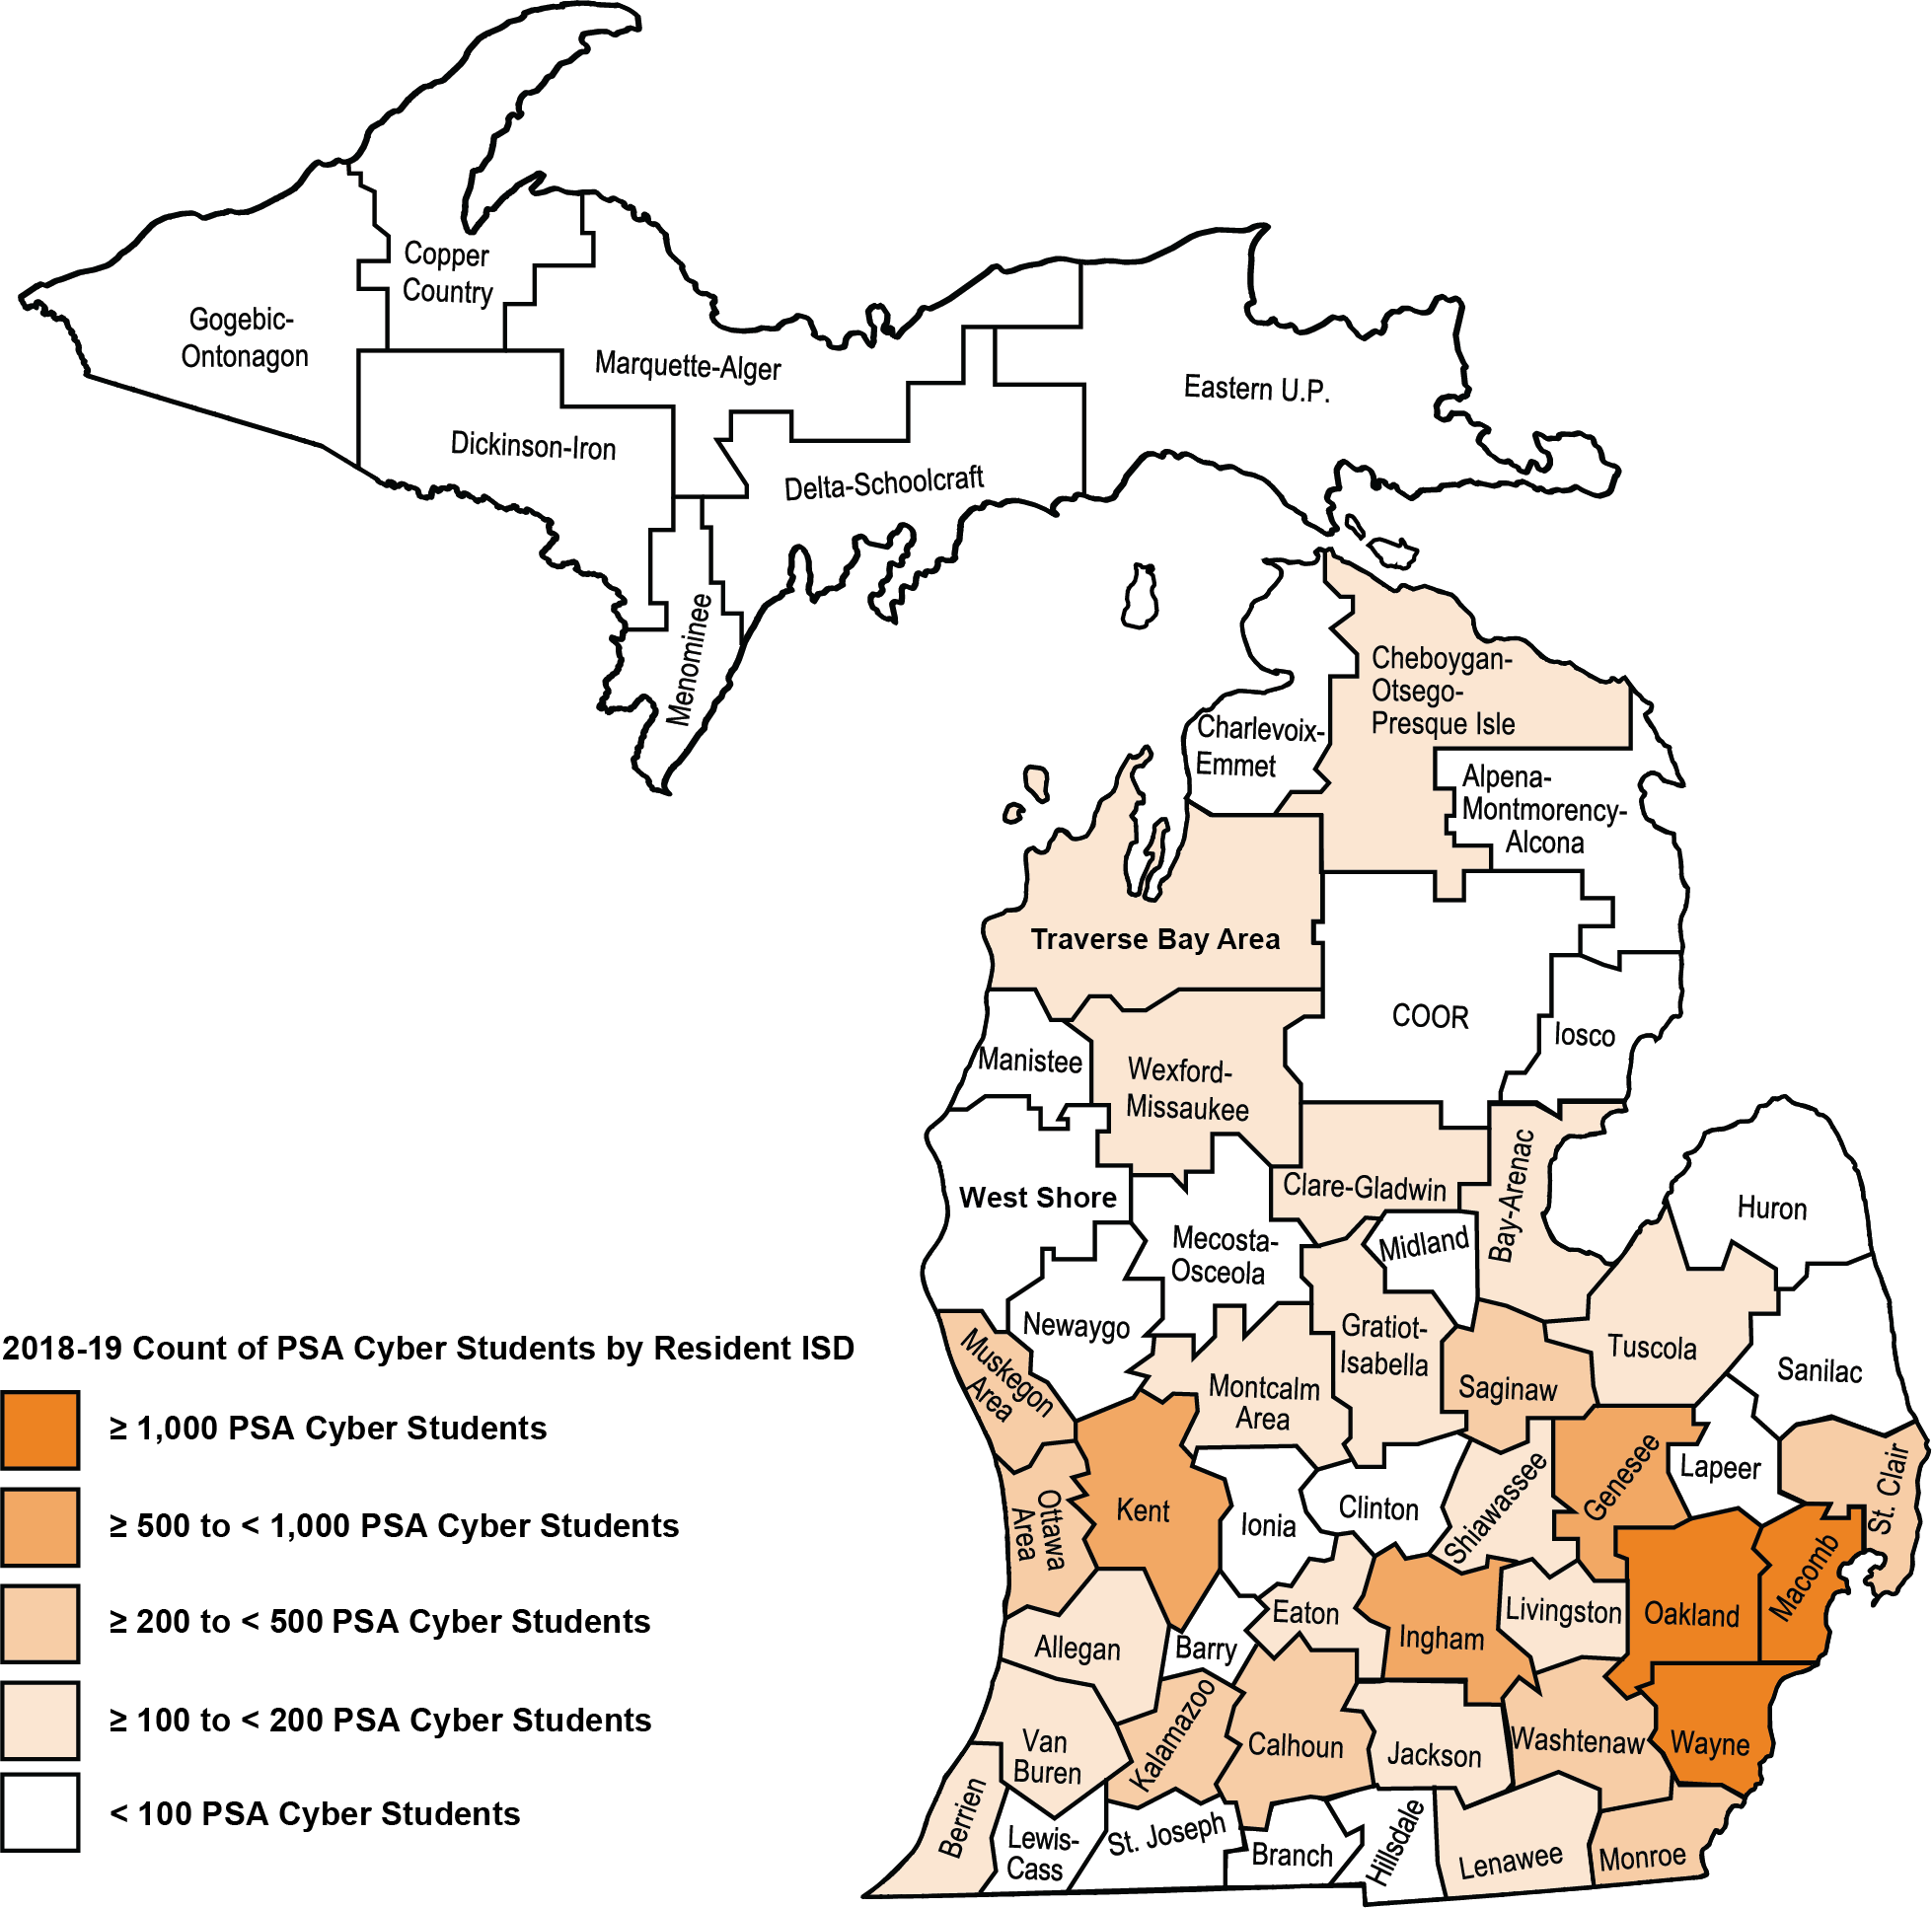 Map shows Michigan ISDs colored by the percentage of PSA cyber students by resident ISD. The majority of counties are white meaning they have less than 100 PSA cyber students in 2018-19. Counties with the highest percentage cluster around the Wayne, Oakland, Macomb, Ingham, and Kent counties.